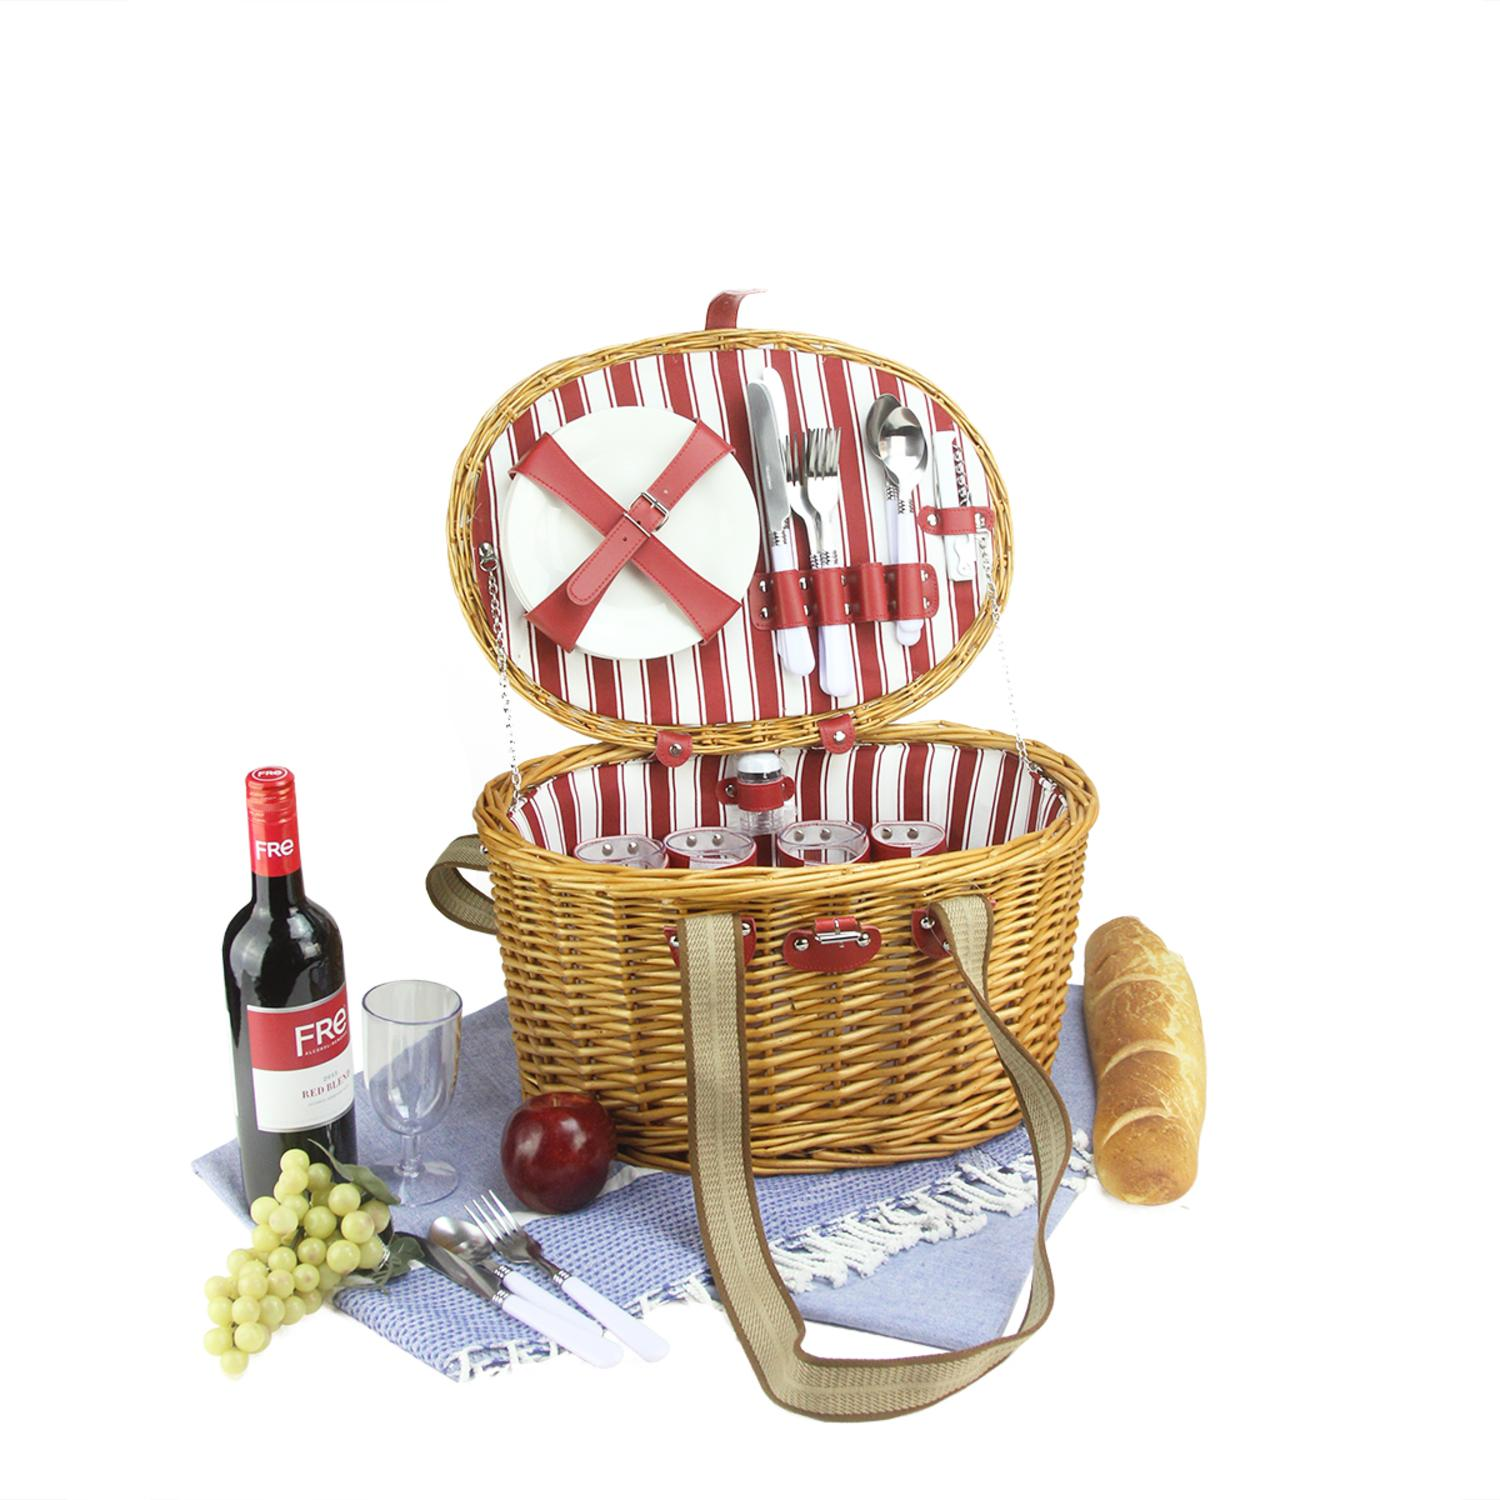 Northlight 4-Person Hand Woven Honey Willow Striped Picnic Basket Set With Accessories